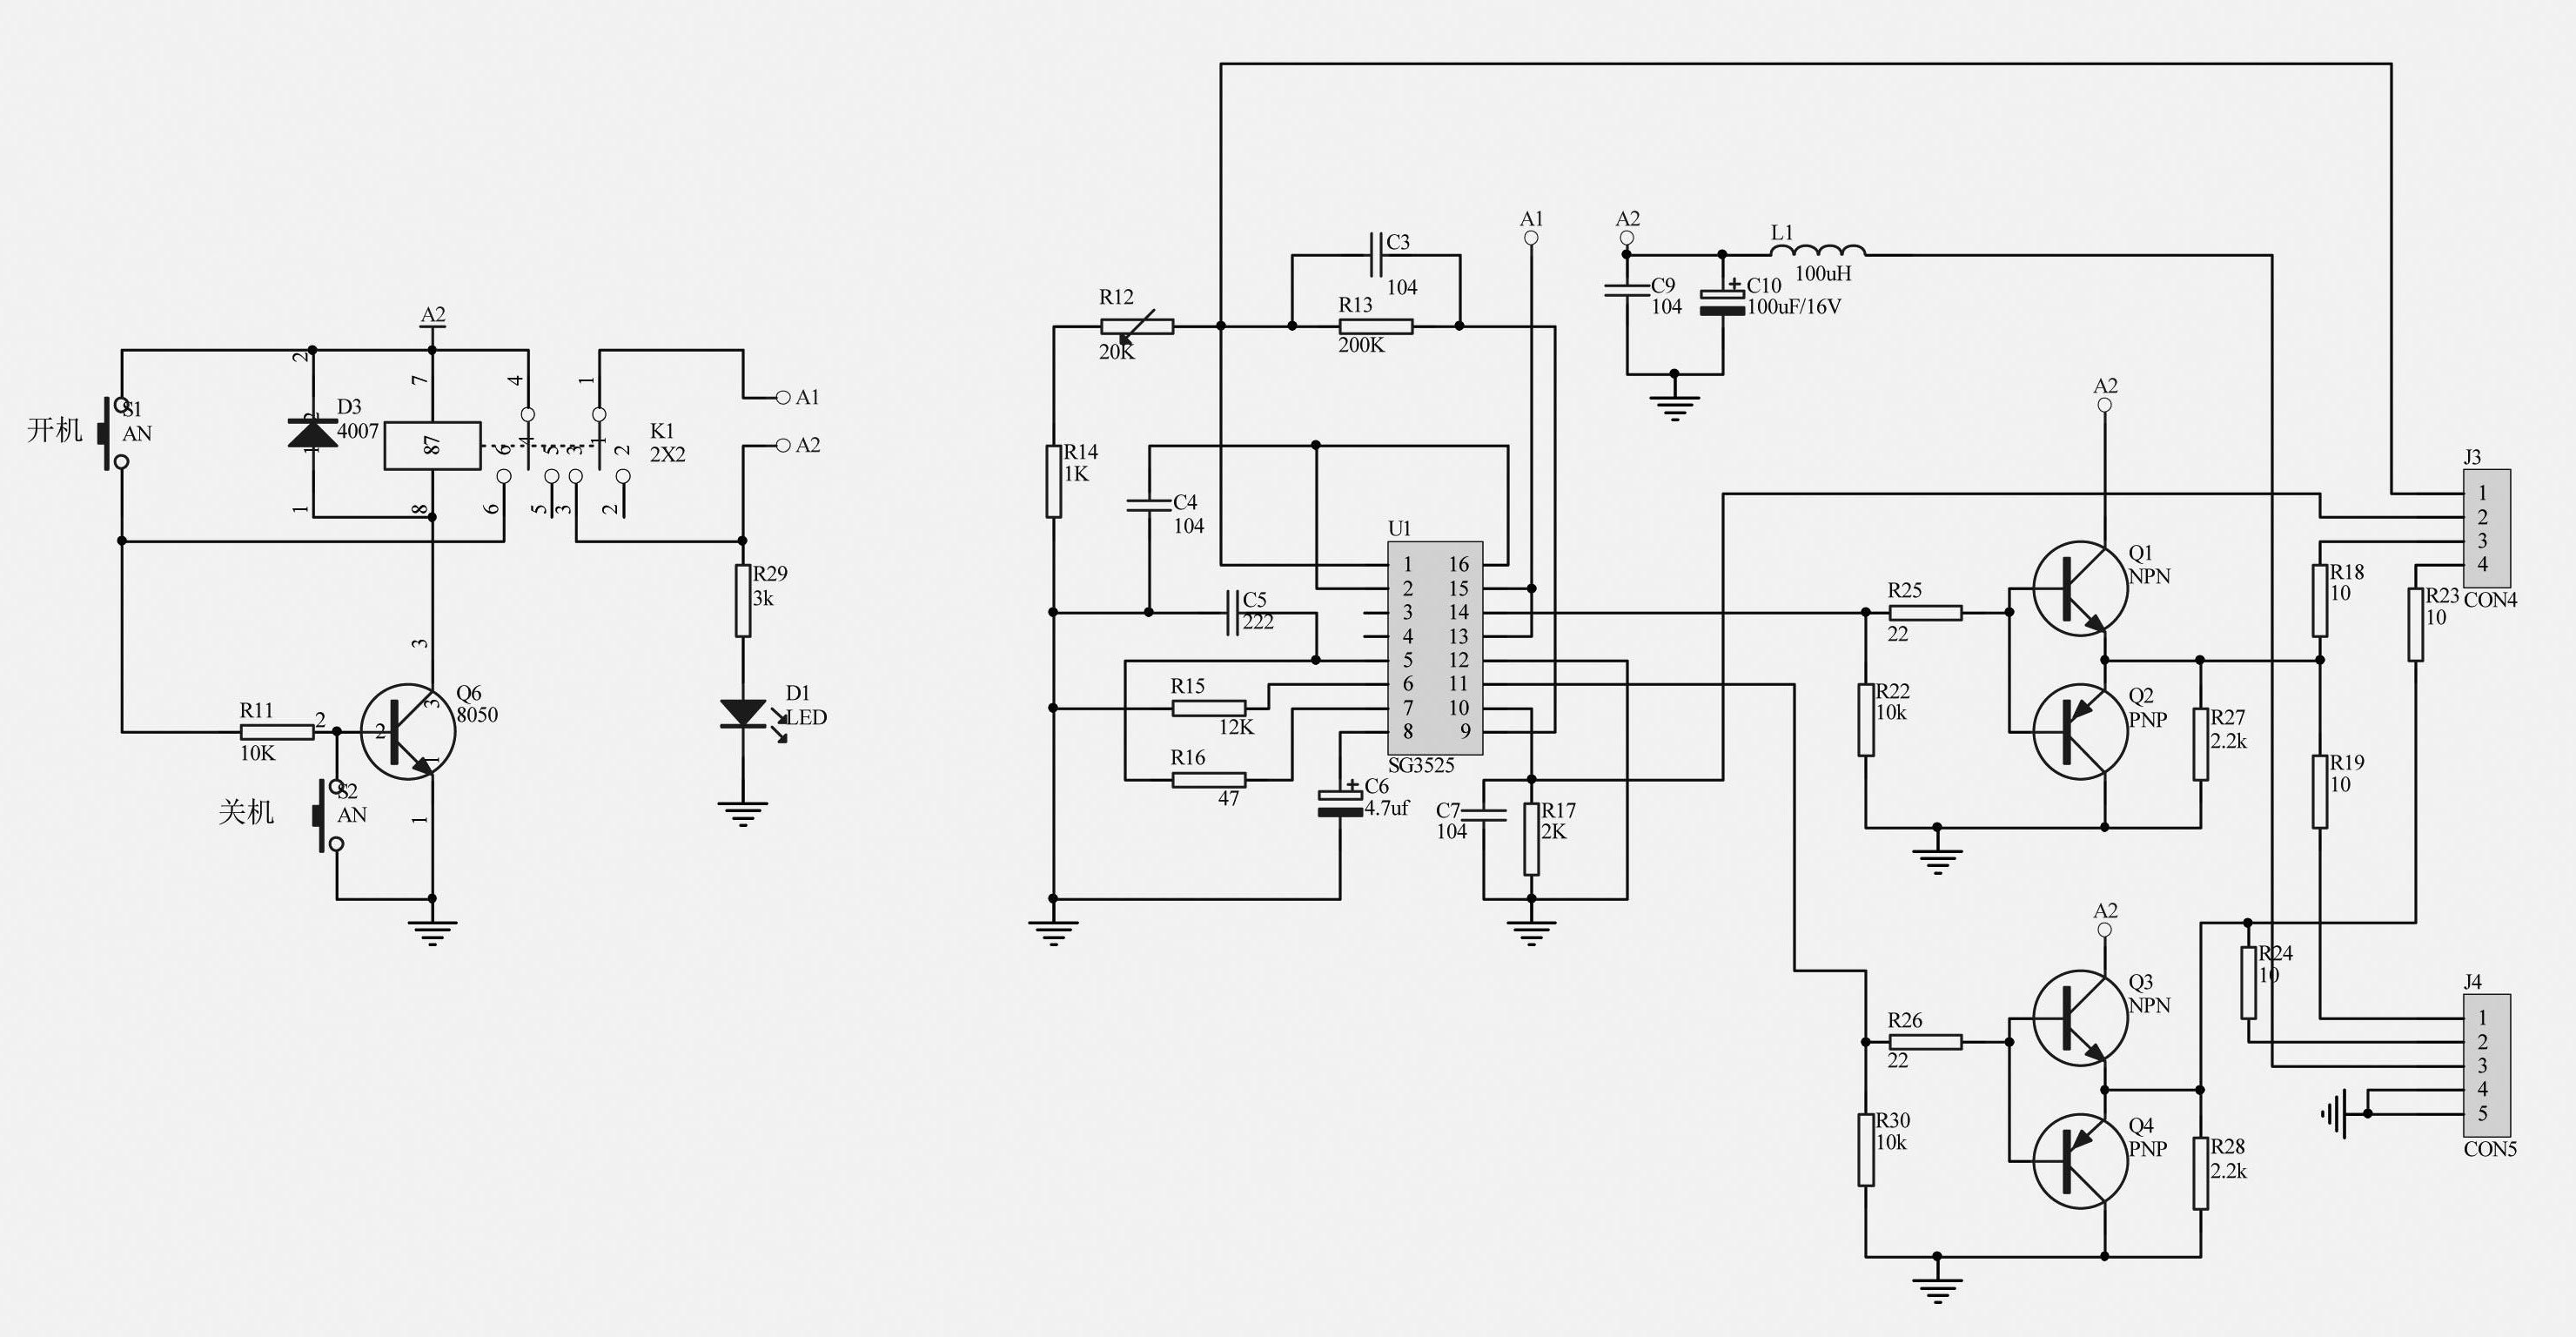 12 volt 1000 watt power inverter design process gohz com rh gohz com 1000 watt inverter circuit diagram pdf 1000 watt inverter circuit diagram pdf